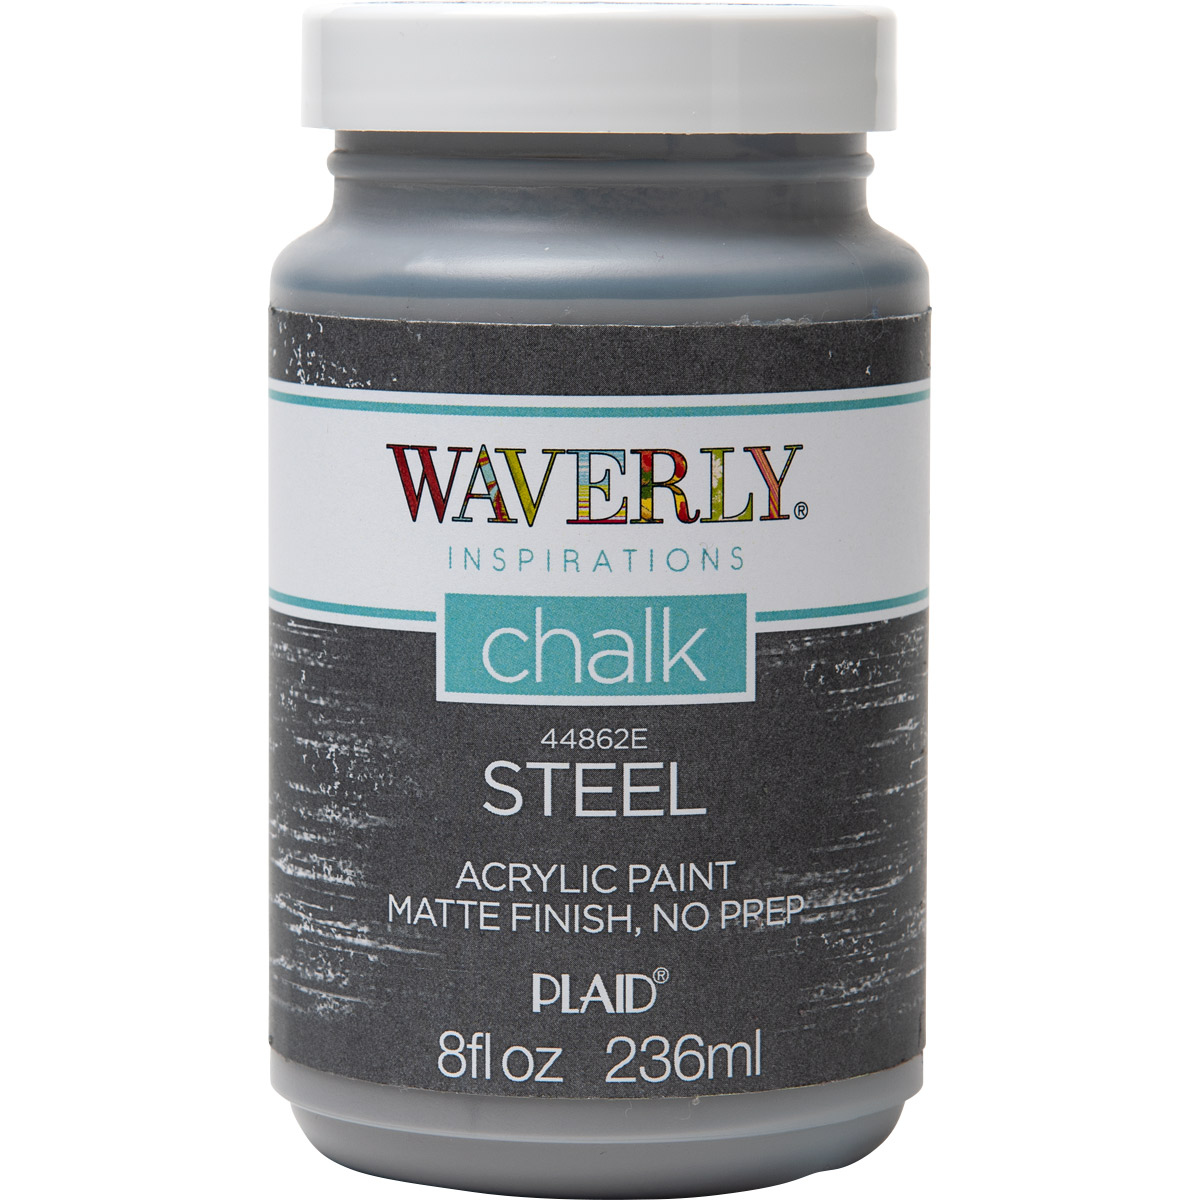 Waverly ® Inspirations Chalk Finish Acrylic Paint - Steel, 8 oz.